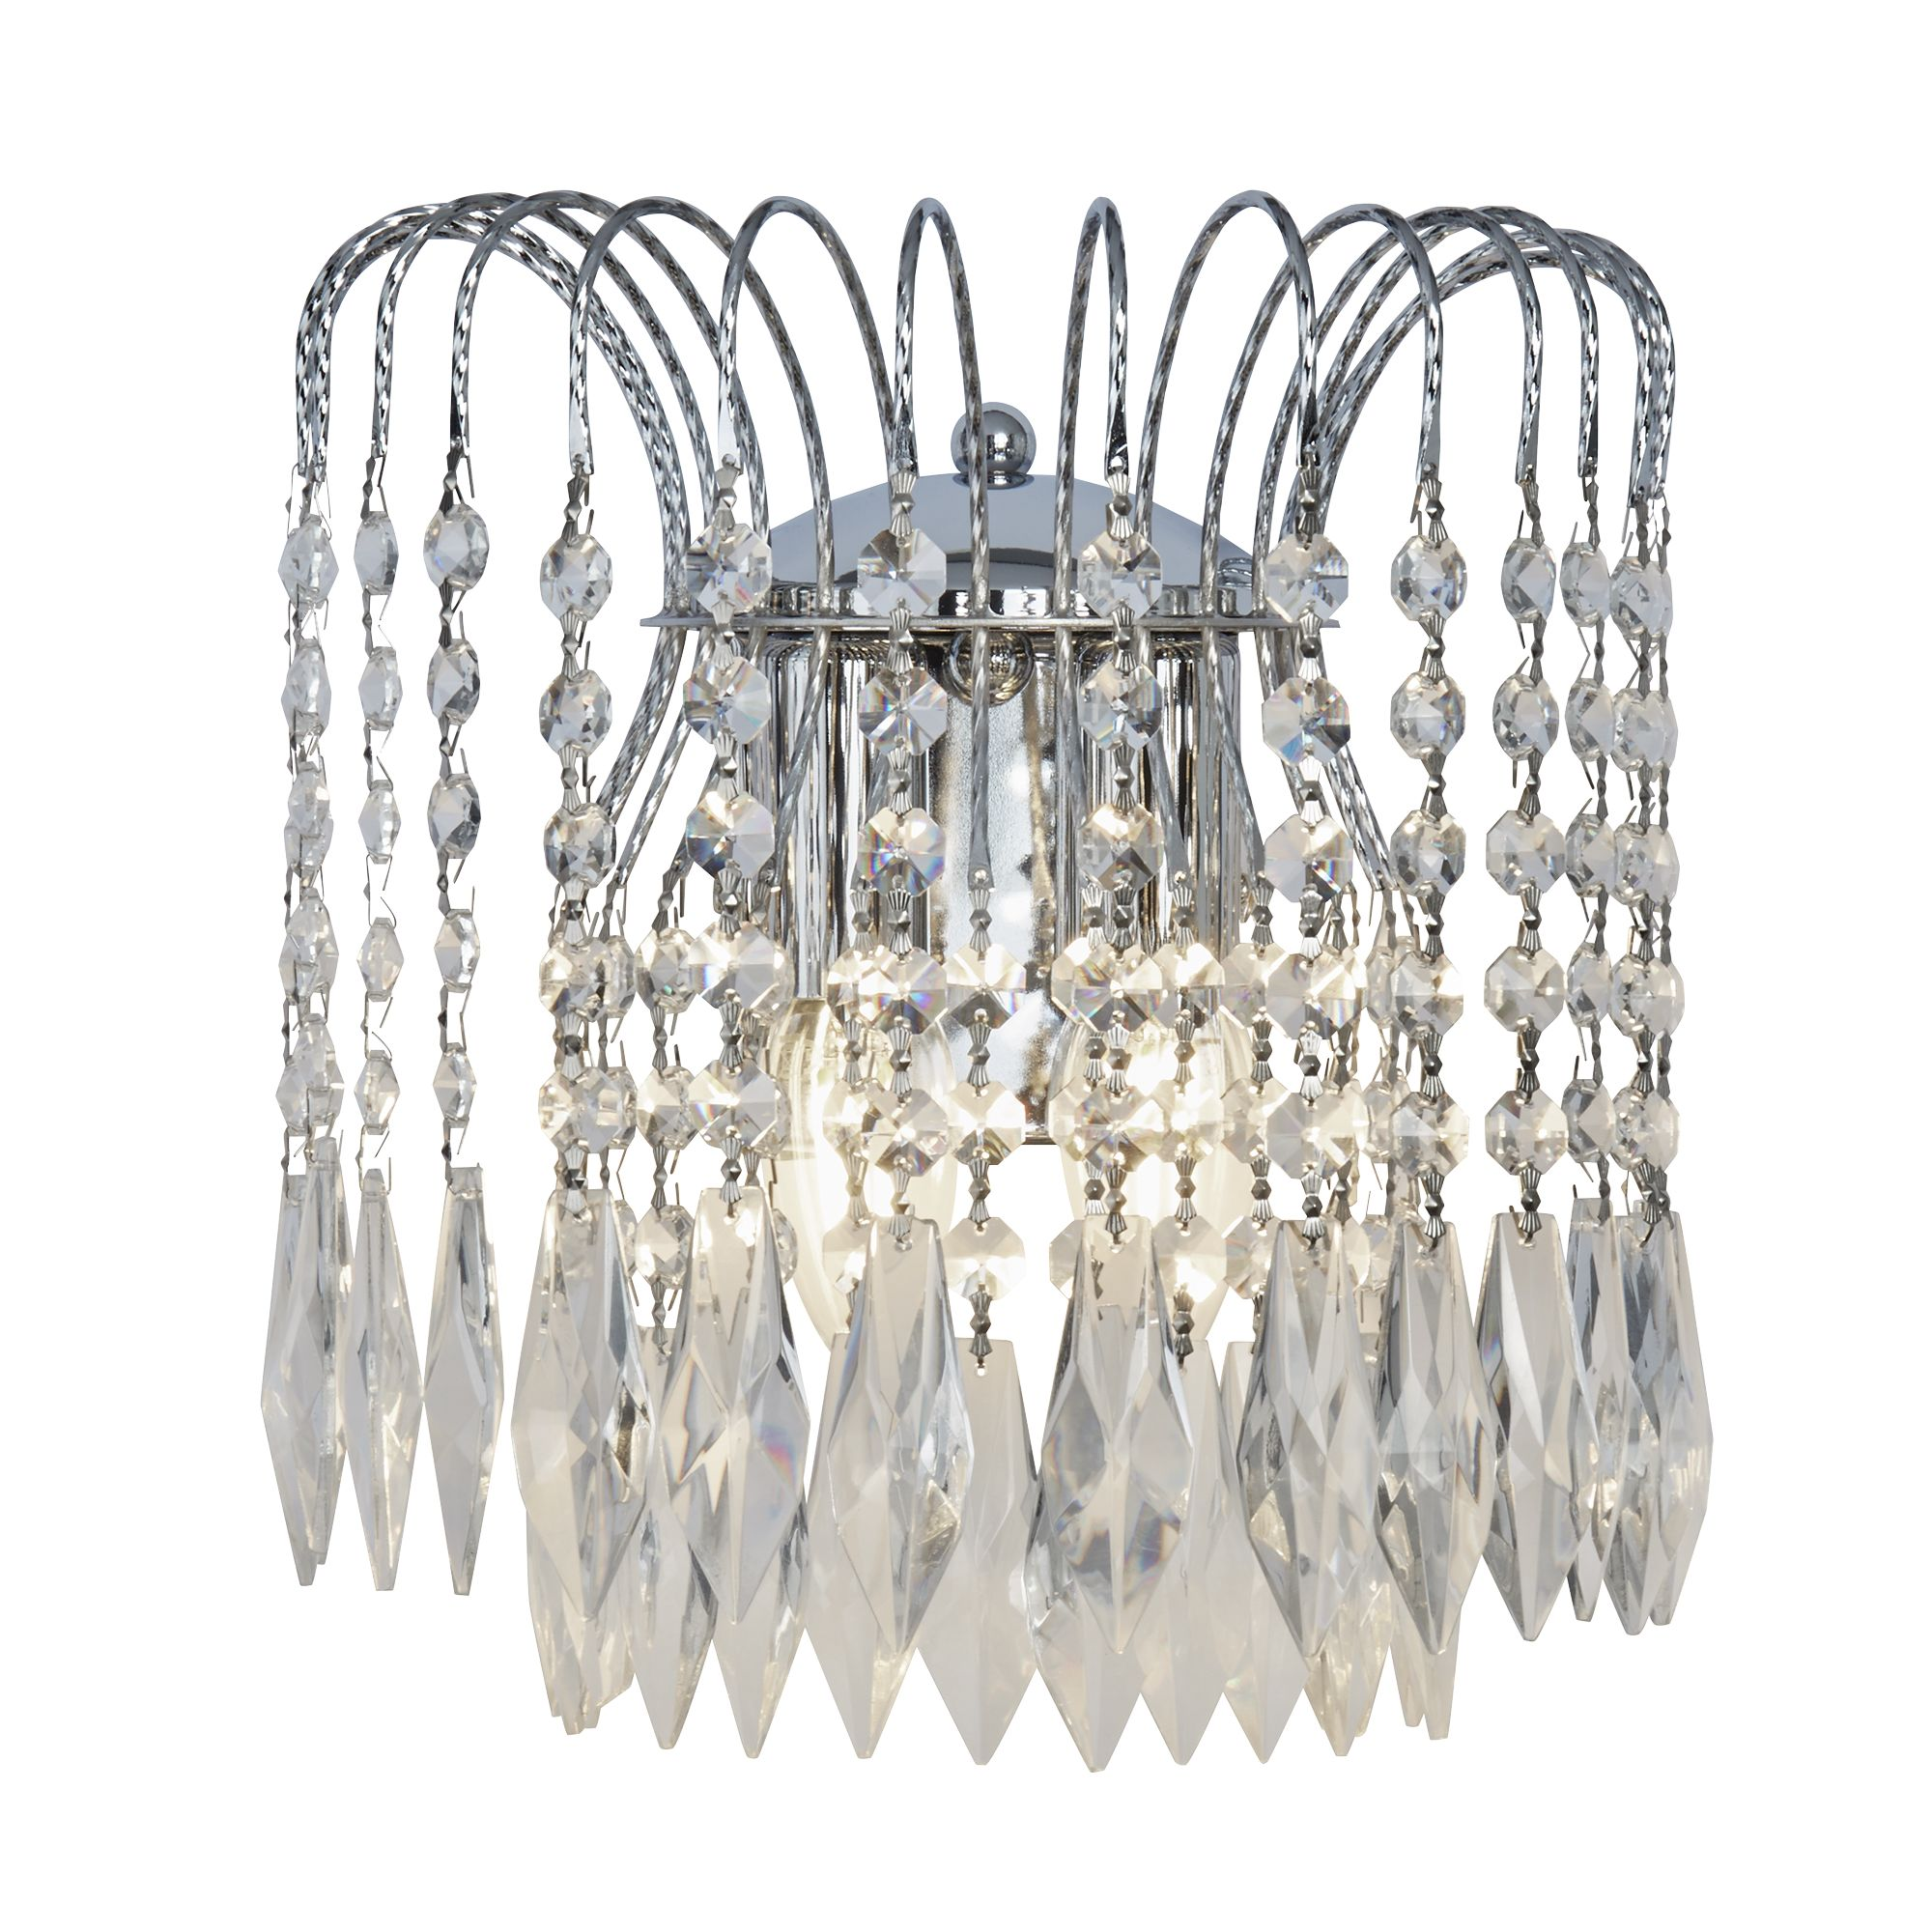 Waterfall Chrome 2 Light Wall Bracket With Crystal Button Drops Decoration